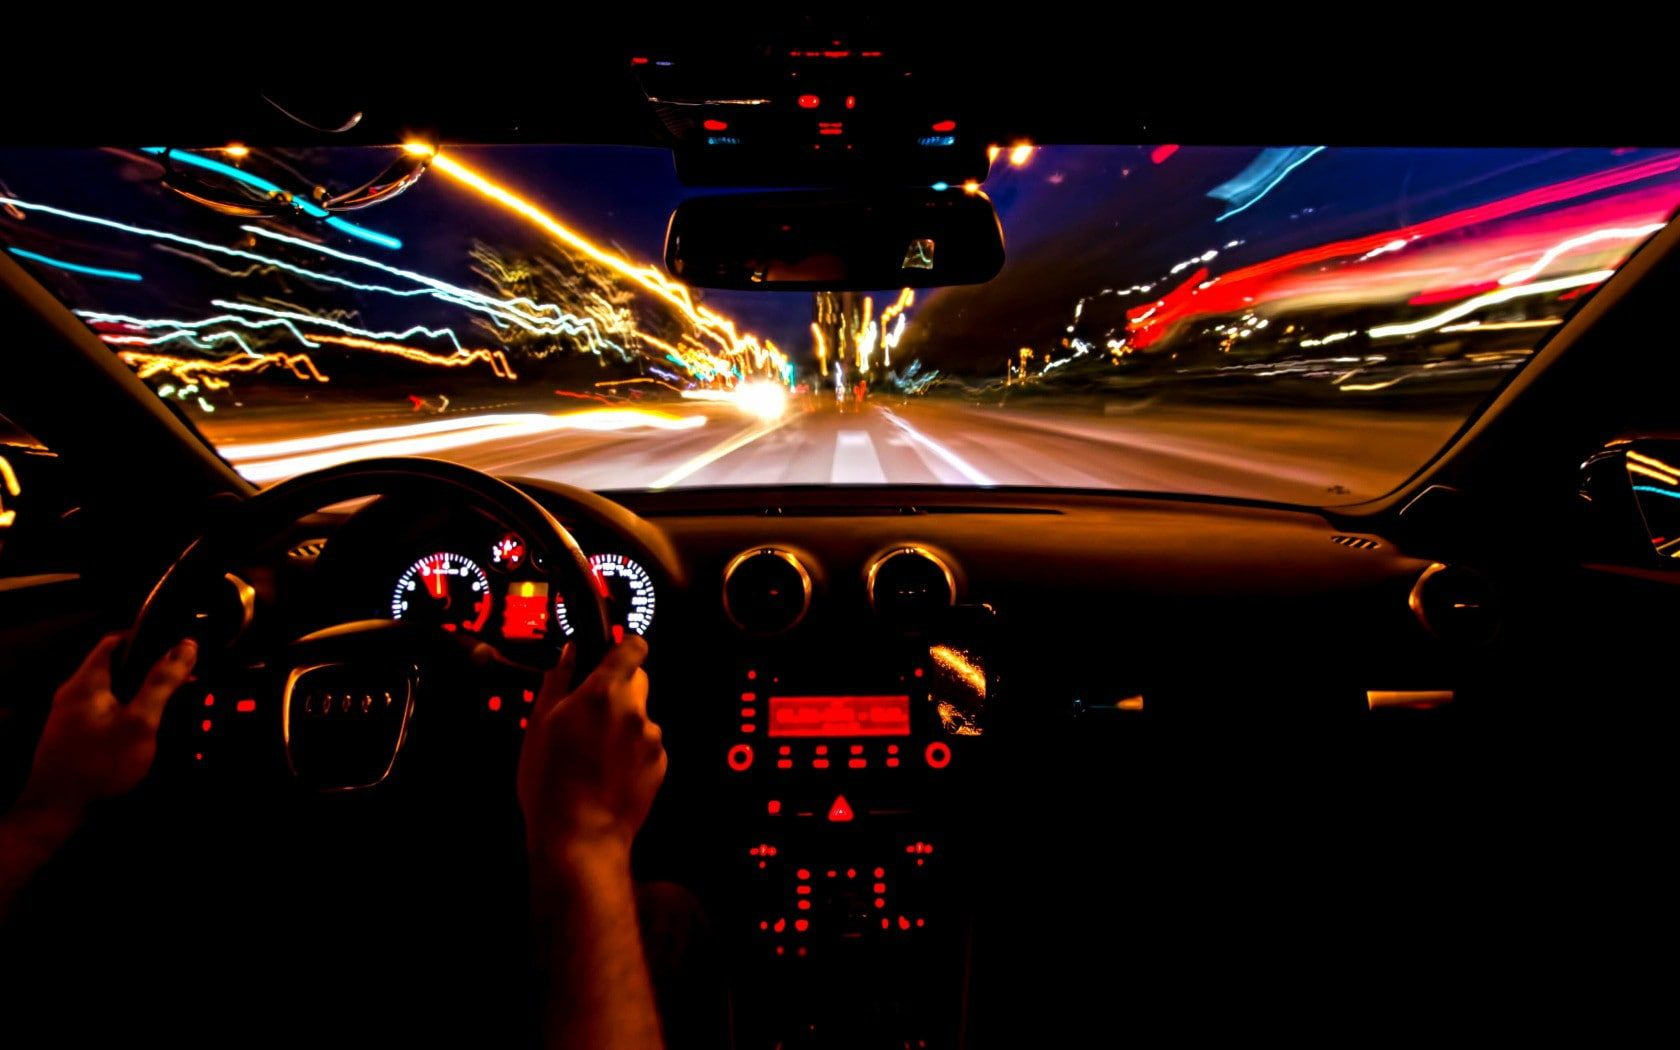 Audi A3 8p Timelapse Photo Of Car On Road Beauty Audi Exposure Night A3 8p Movement 720p Wallpaper Hd Time Lapse Photo Audi A3 Interior Car Photos